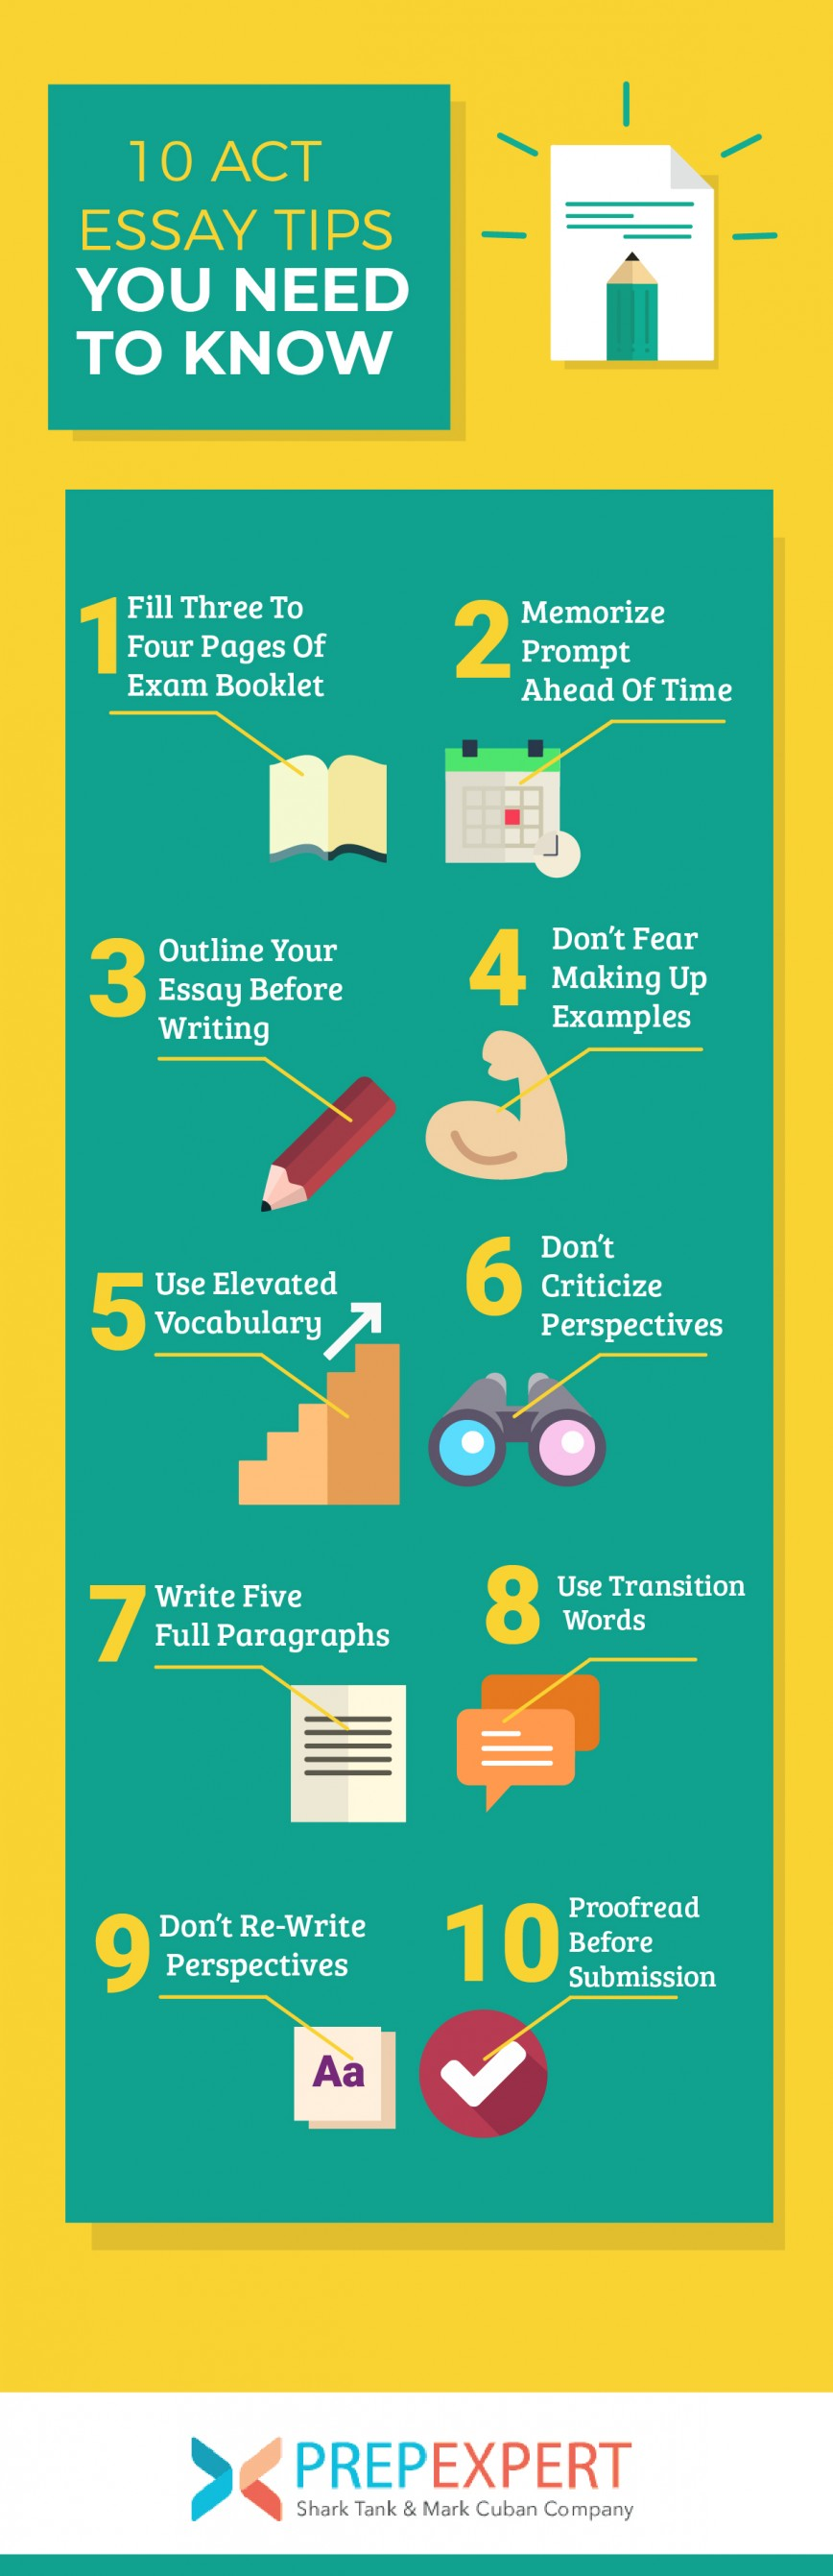 017 Essay Example Act 235585 Essayinfographics 052918 Fearsome New Time Limit Rubric Tips 868